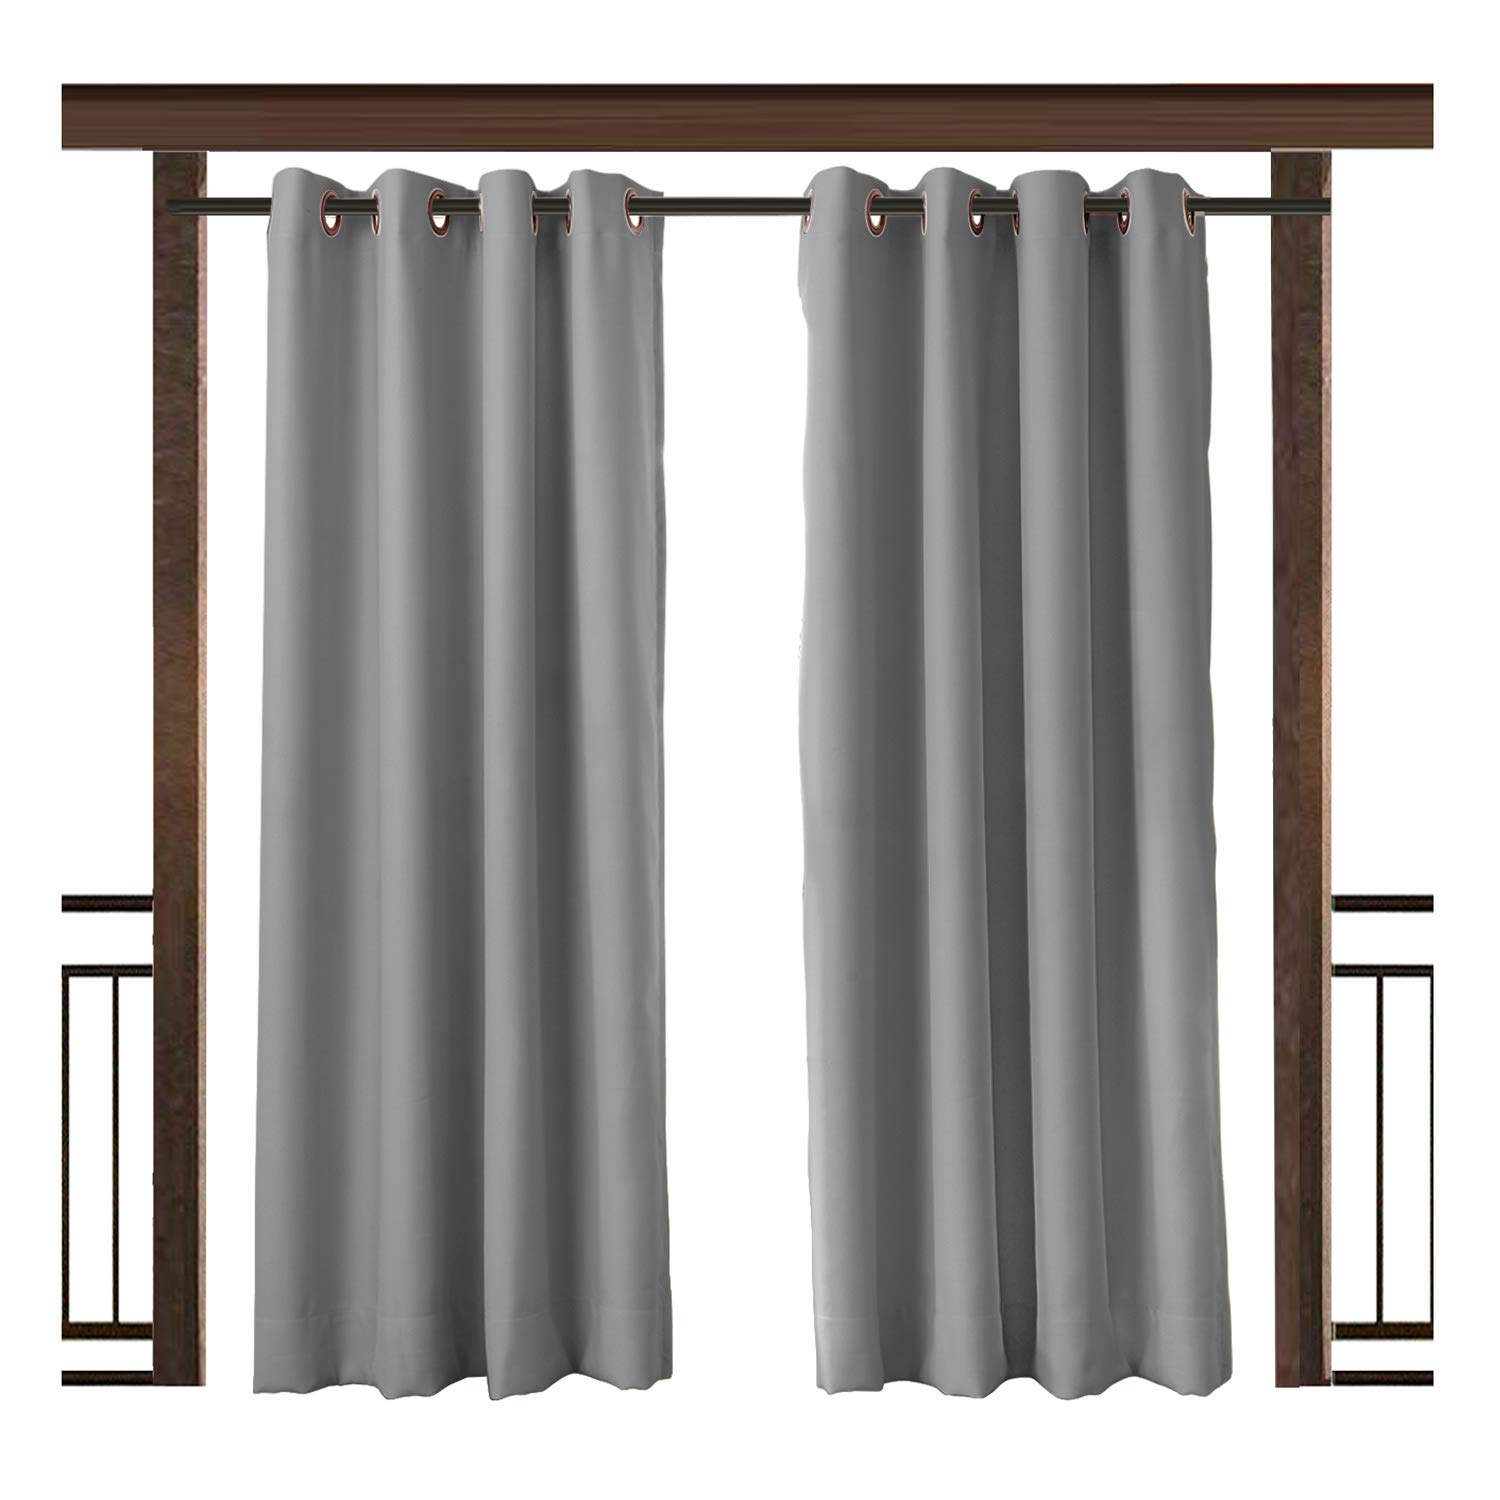 TWOPAGES Outdoor Waterproof Curtain Gray Rustproof Grommet Drape, 150'' W x 96'' L for Front Porch Pergola Cabana Covered Patio Gazebo Dock Beach Home (1 Panel)